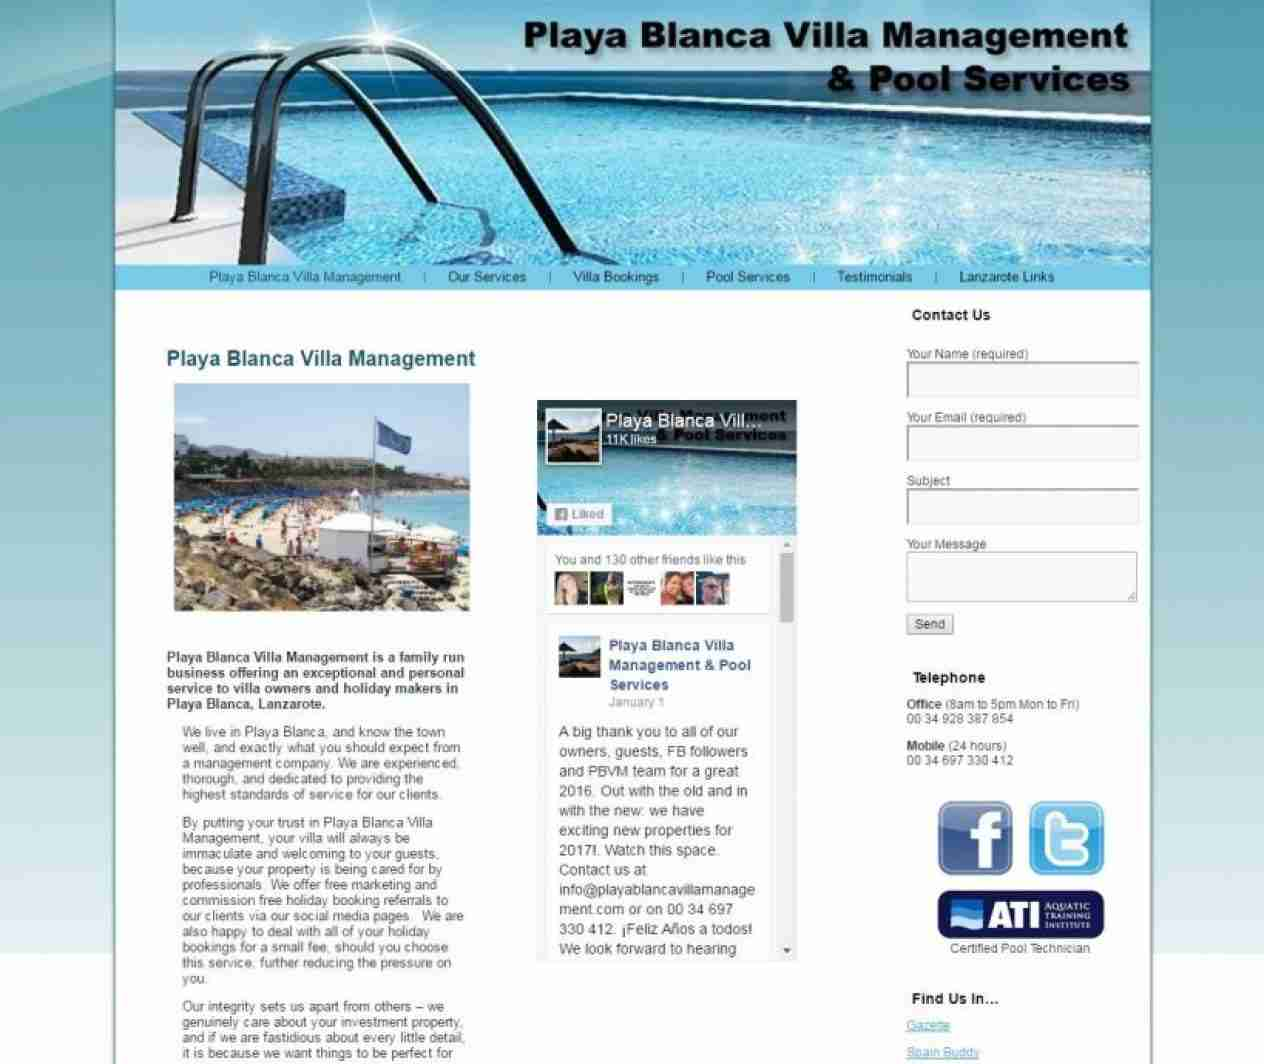 Playa Blanca Villa Management